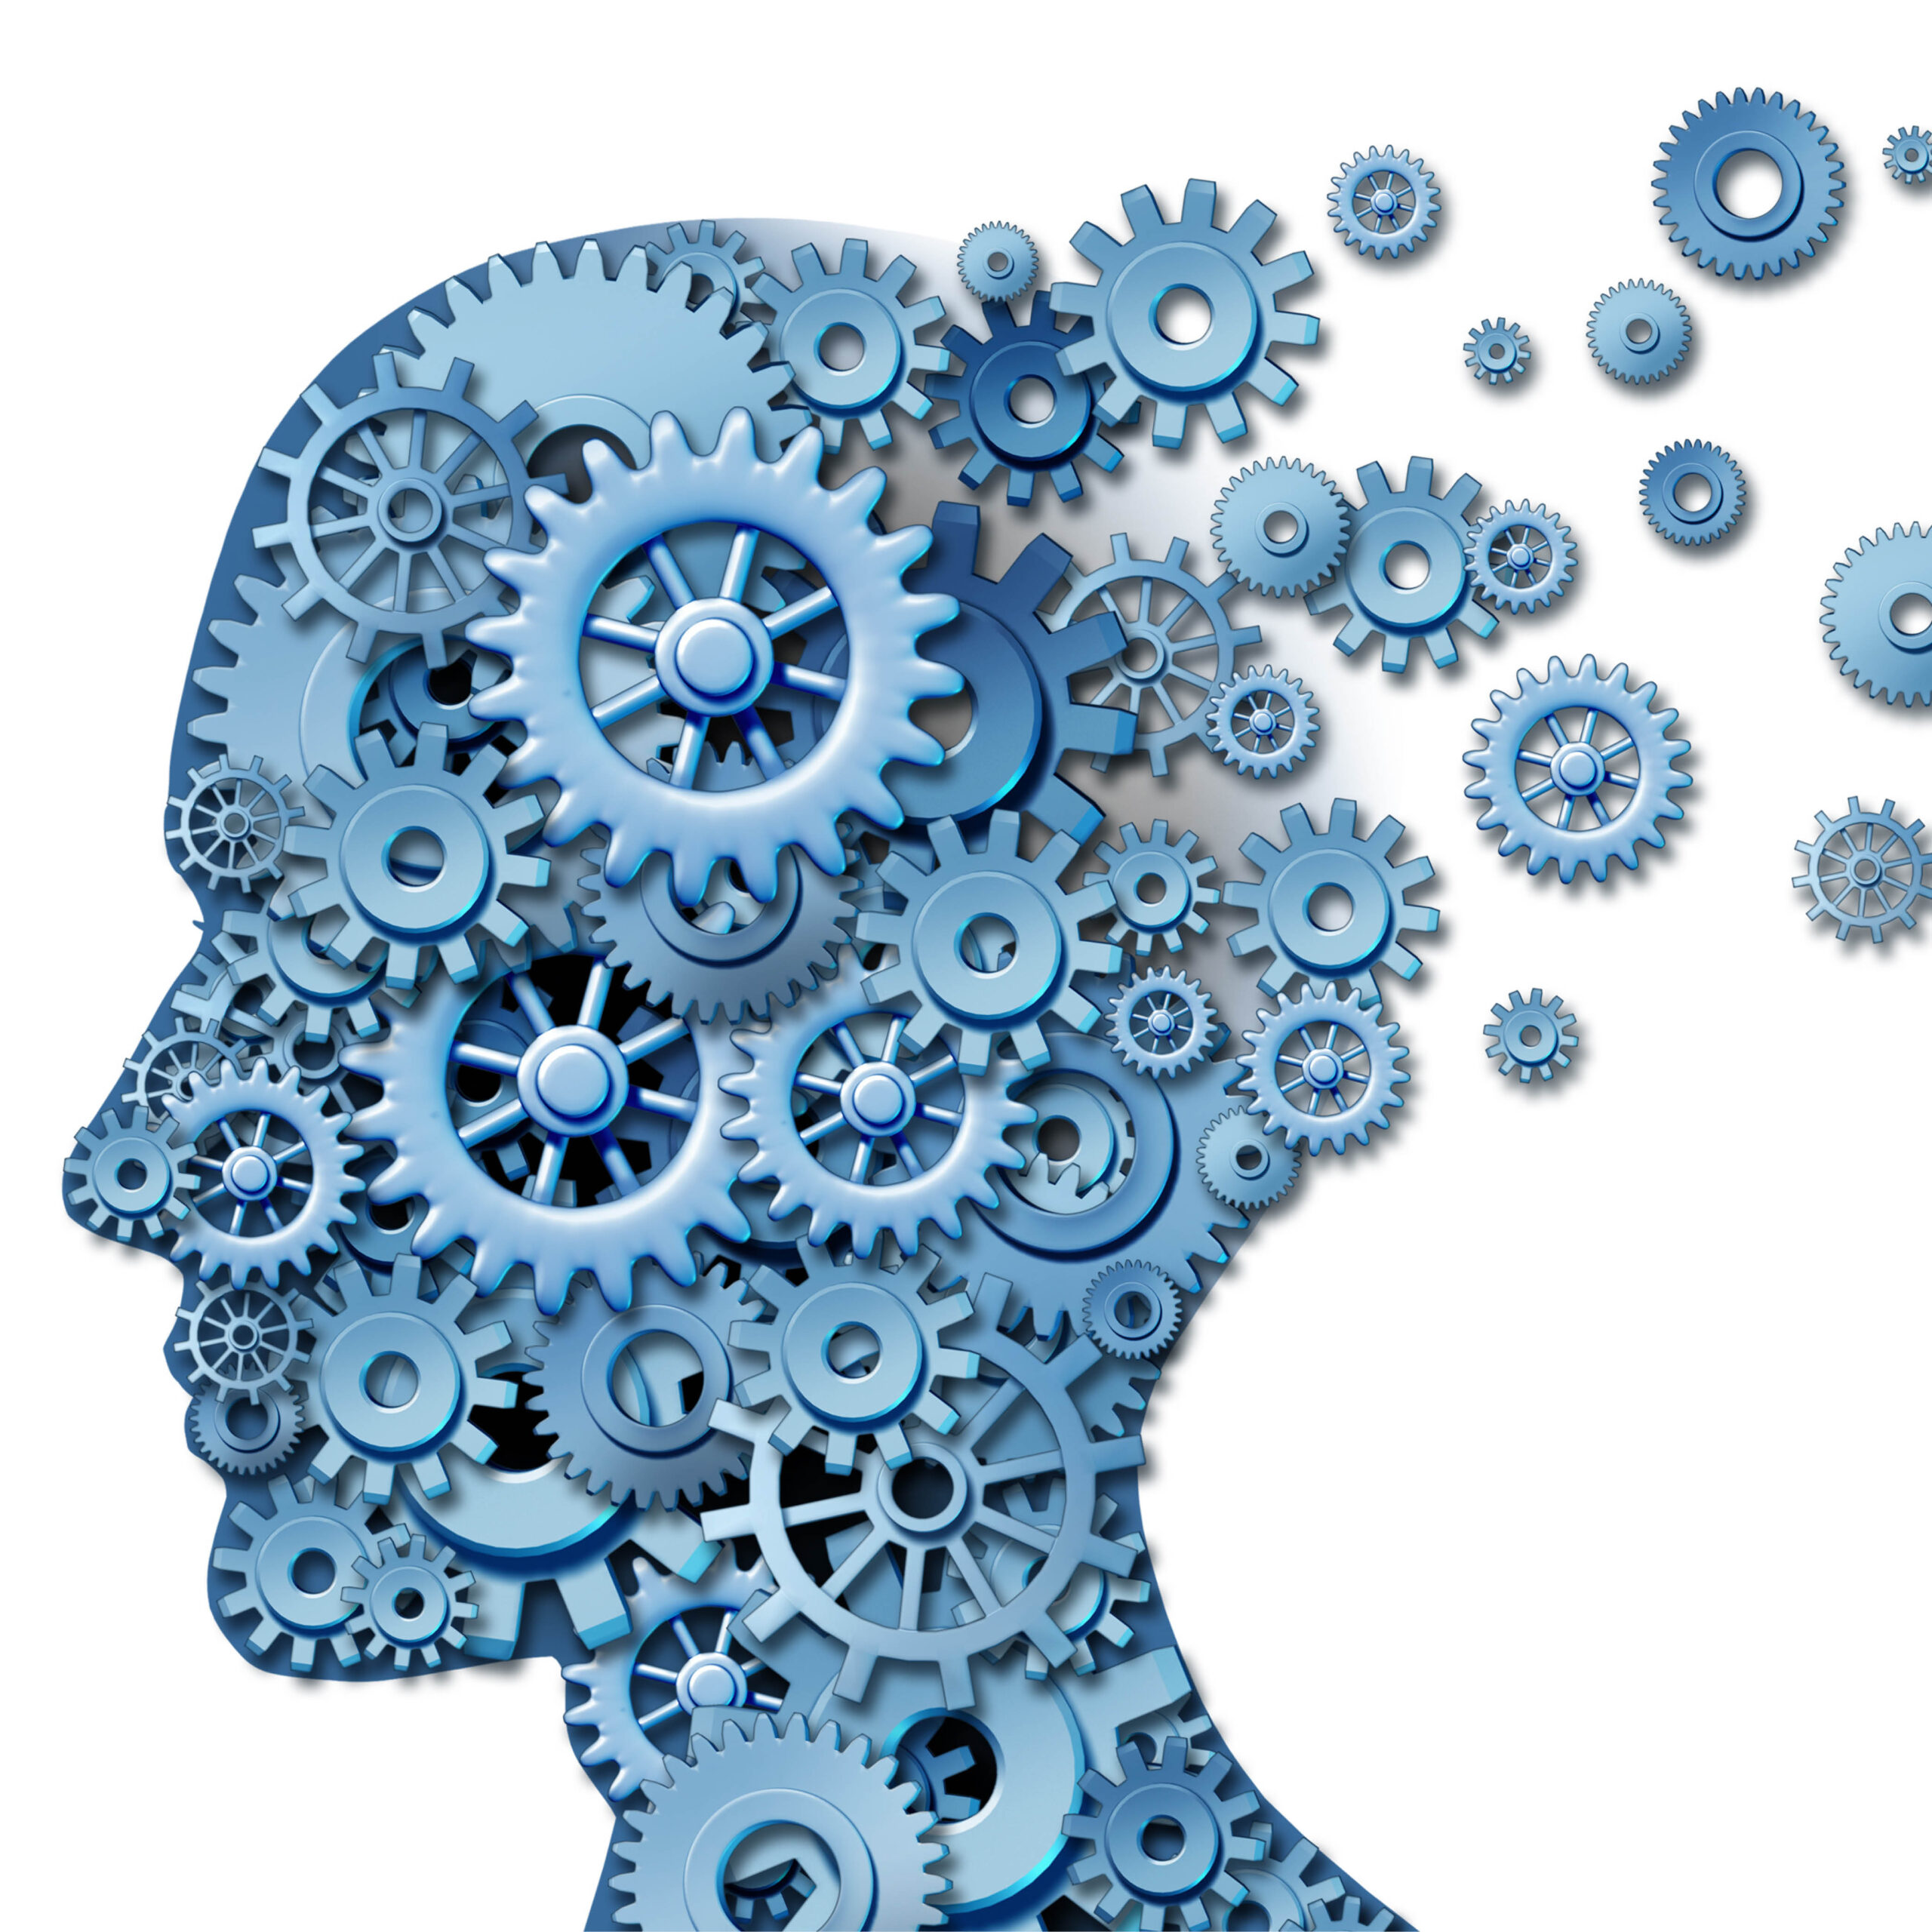 Cogs inside the head of a person